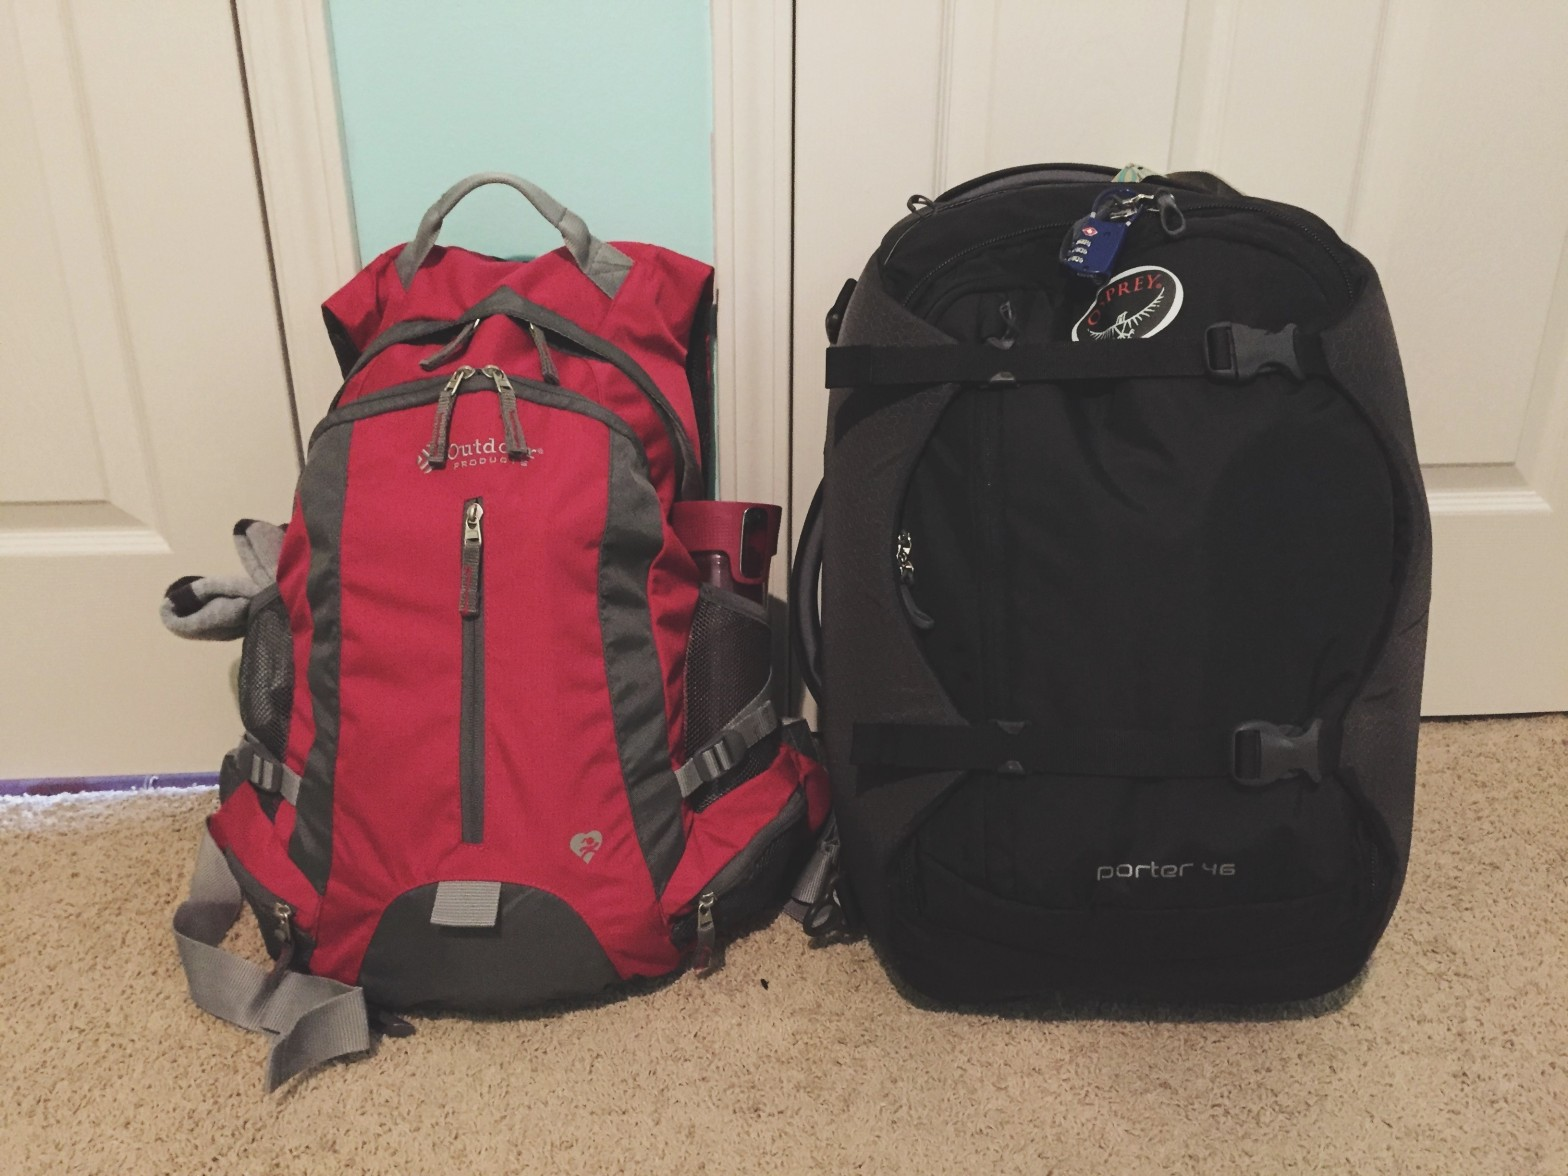 New Zealand Working Holiday Packing List - New Zealand Packing List Tips